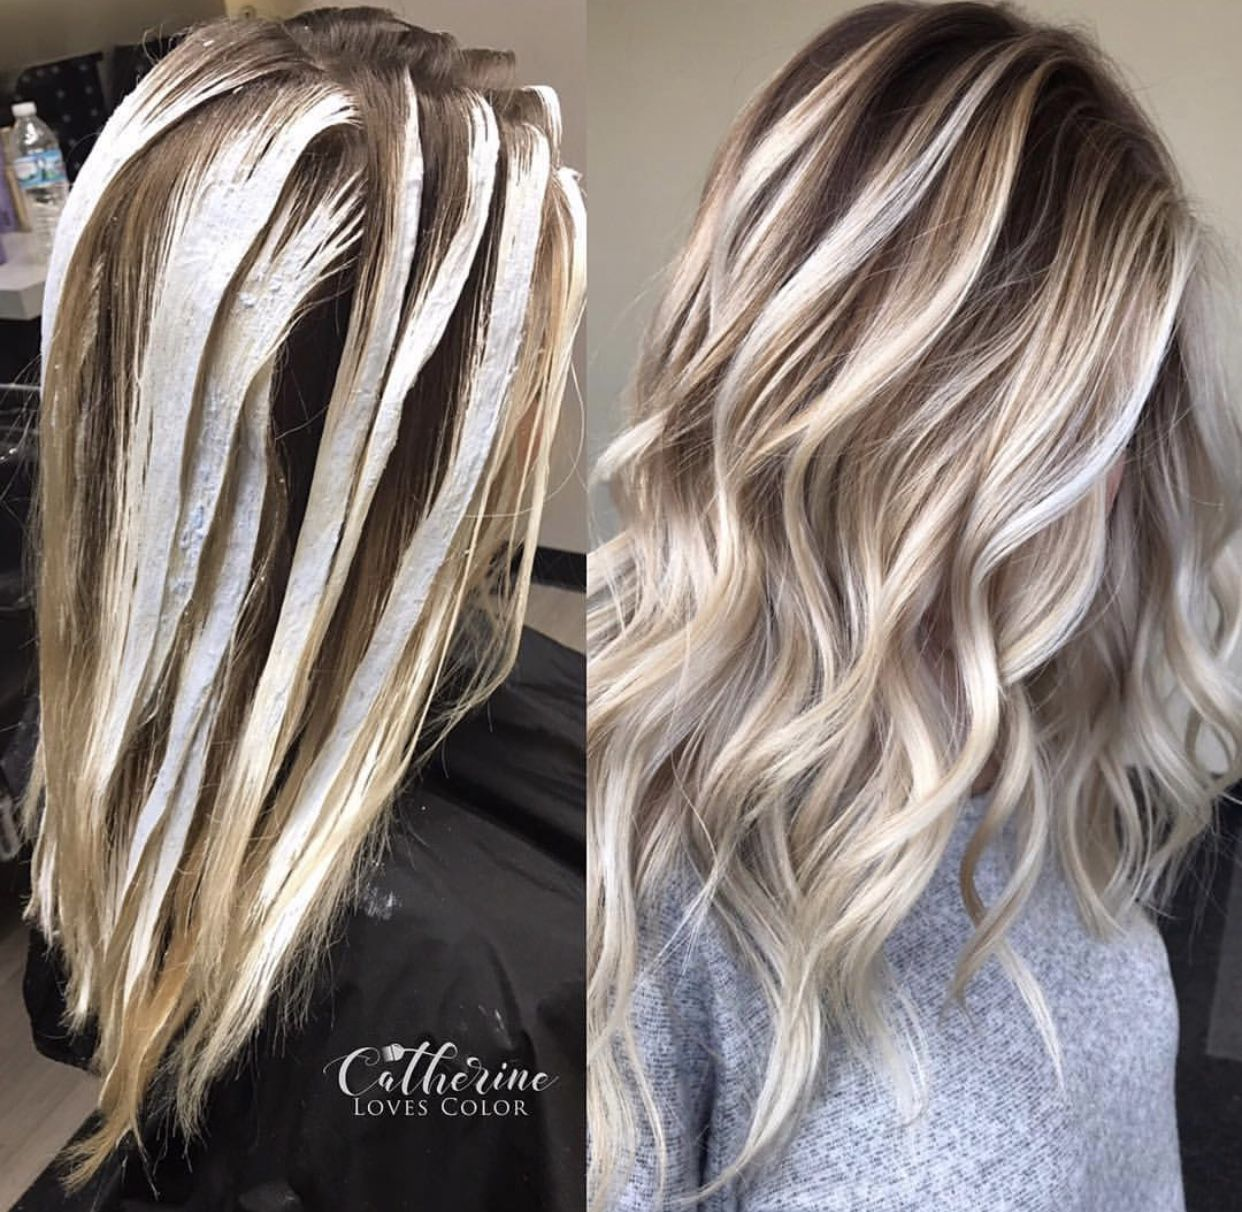 Light Blonde Highlights Hair Styles Hair Highlights Balayage Hair